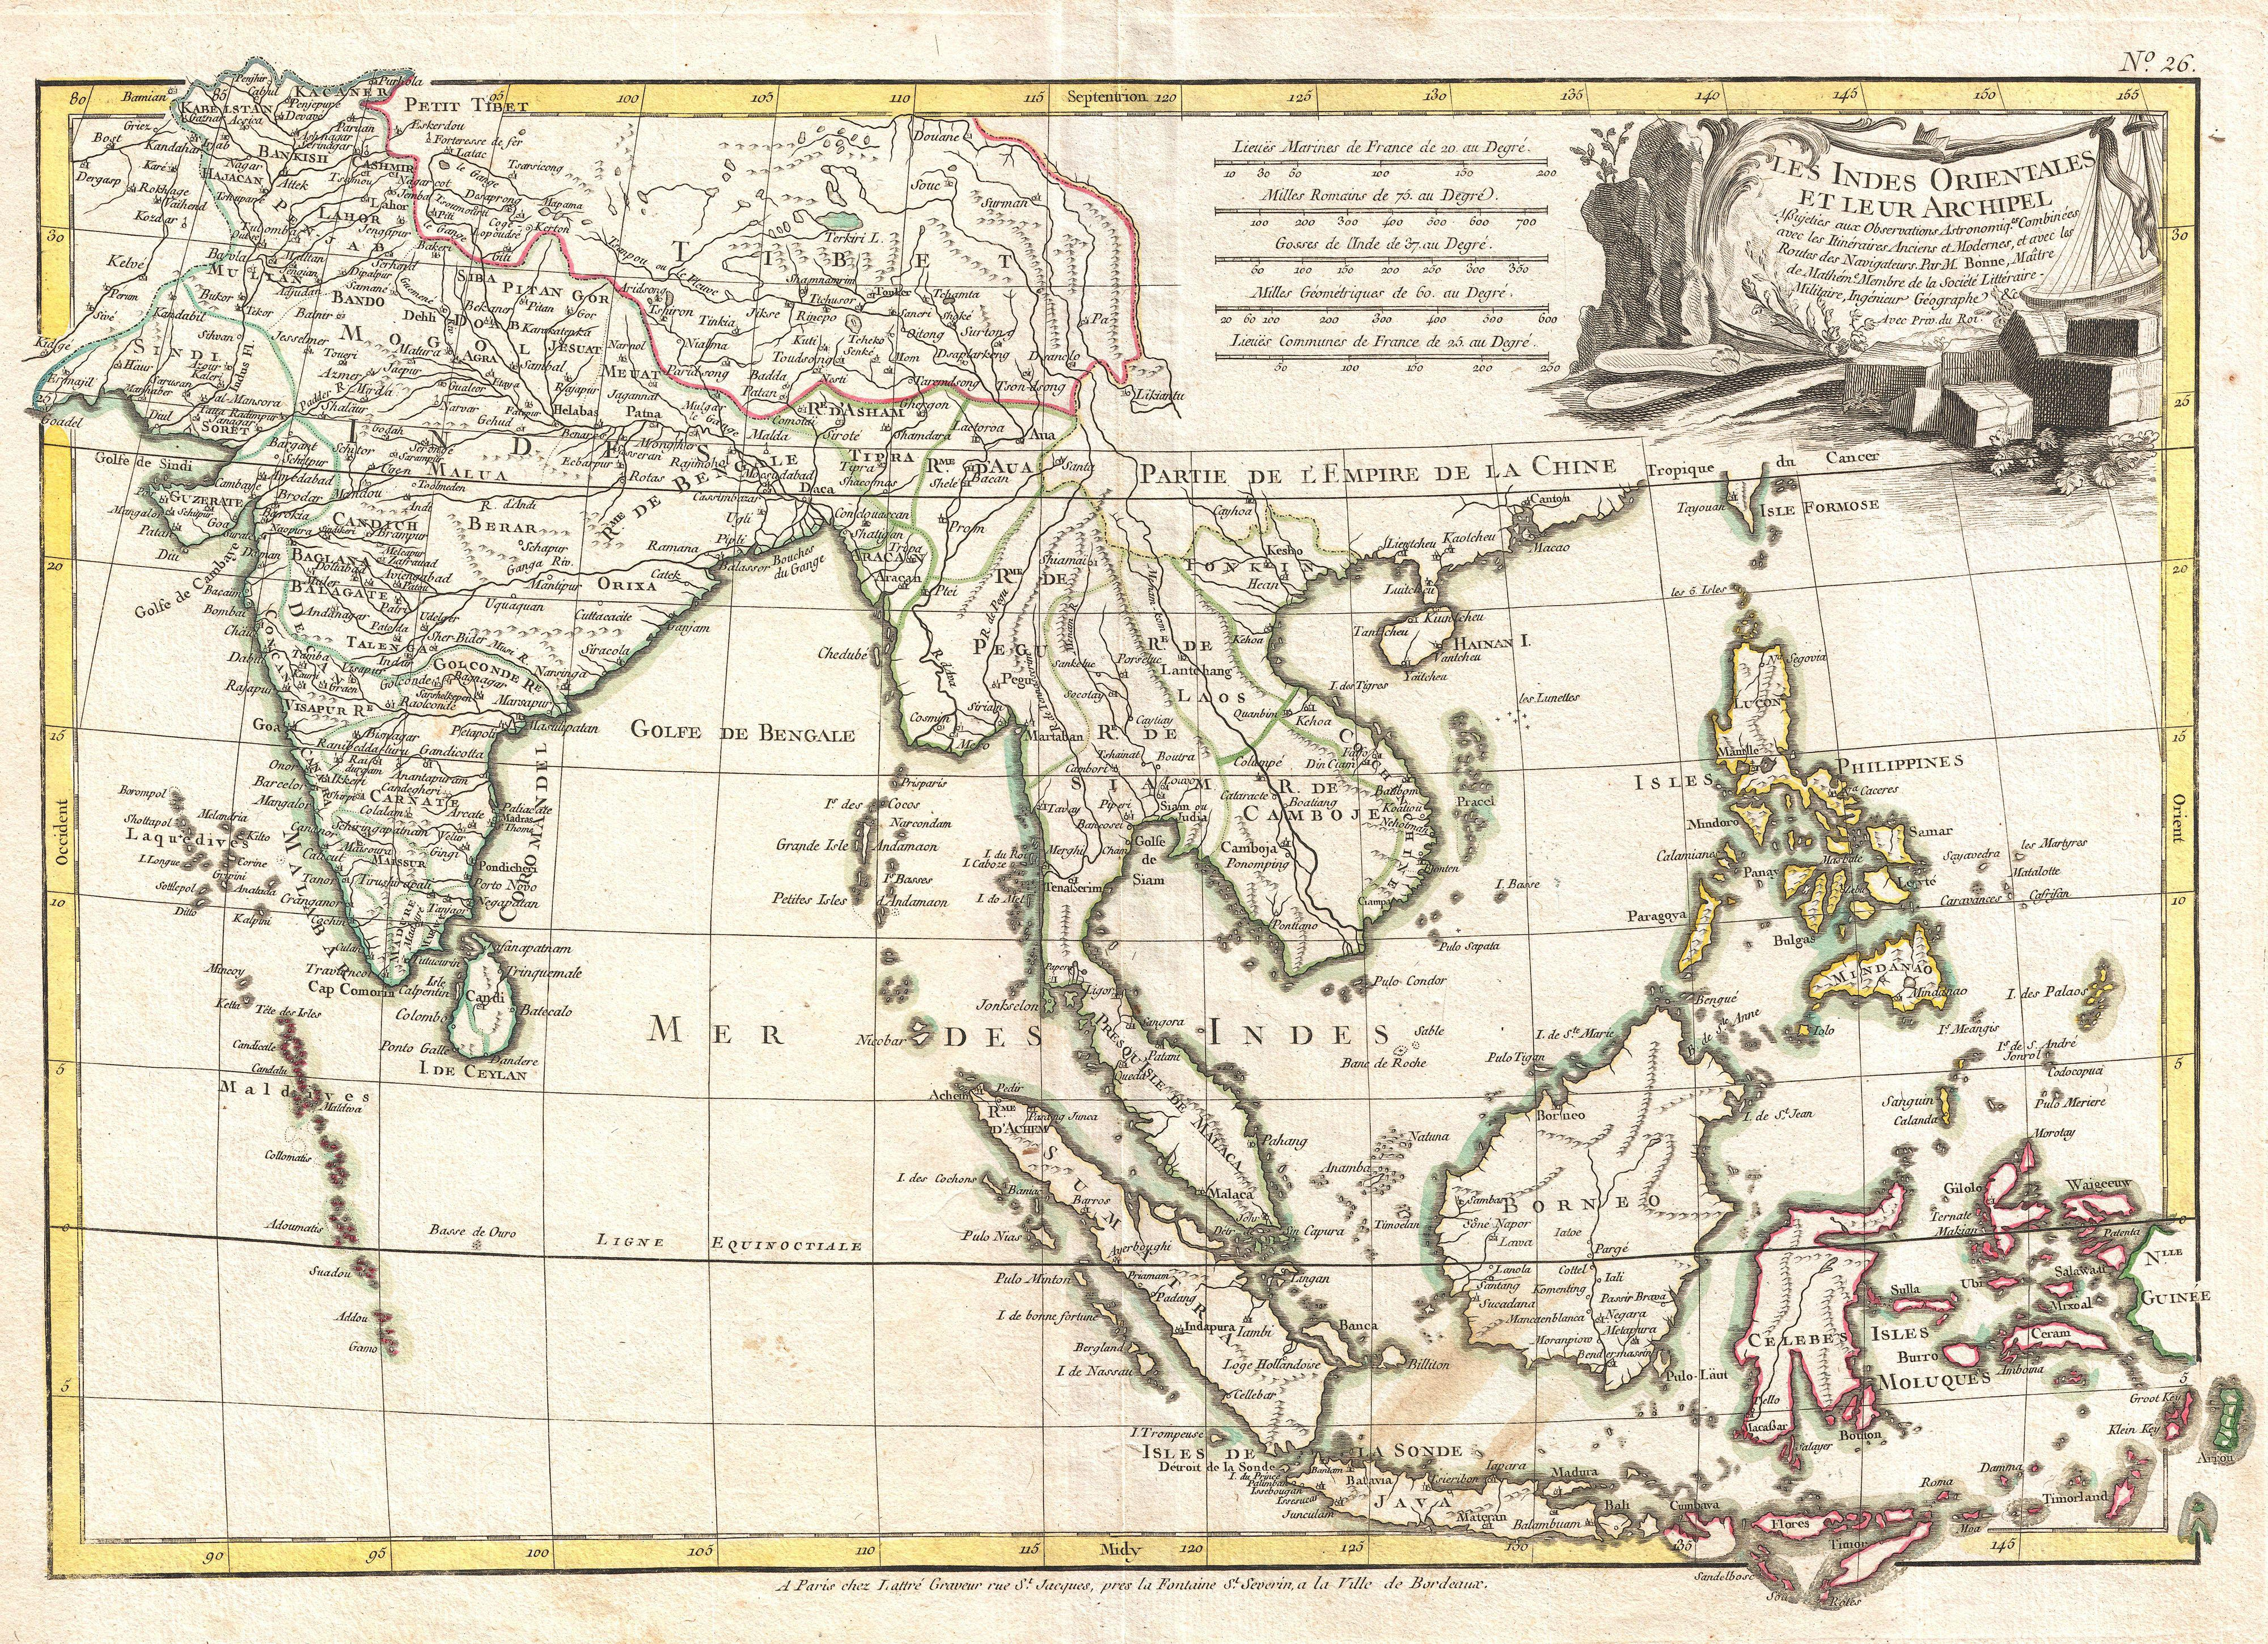 Kin trc vit vietnam architecture old maps of southeast asia 1780 raynal and bonne map of southeast asia and the philippines gumiabroncs Image collections